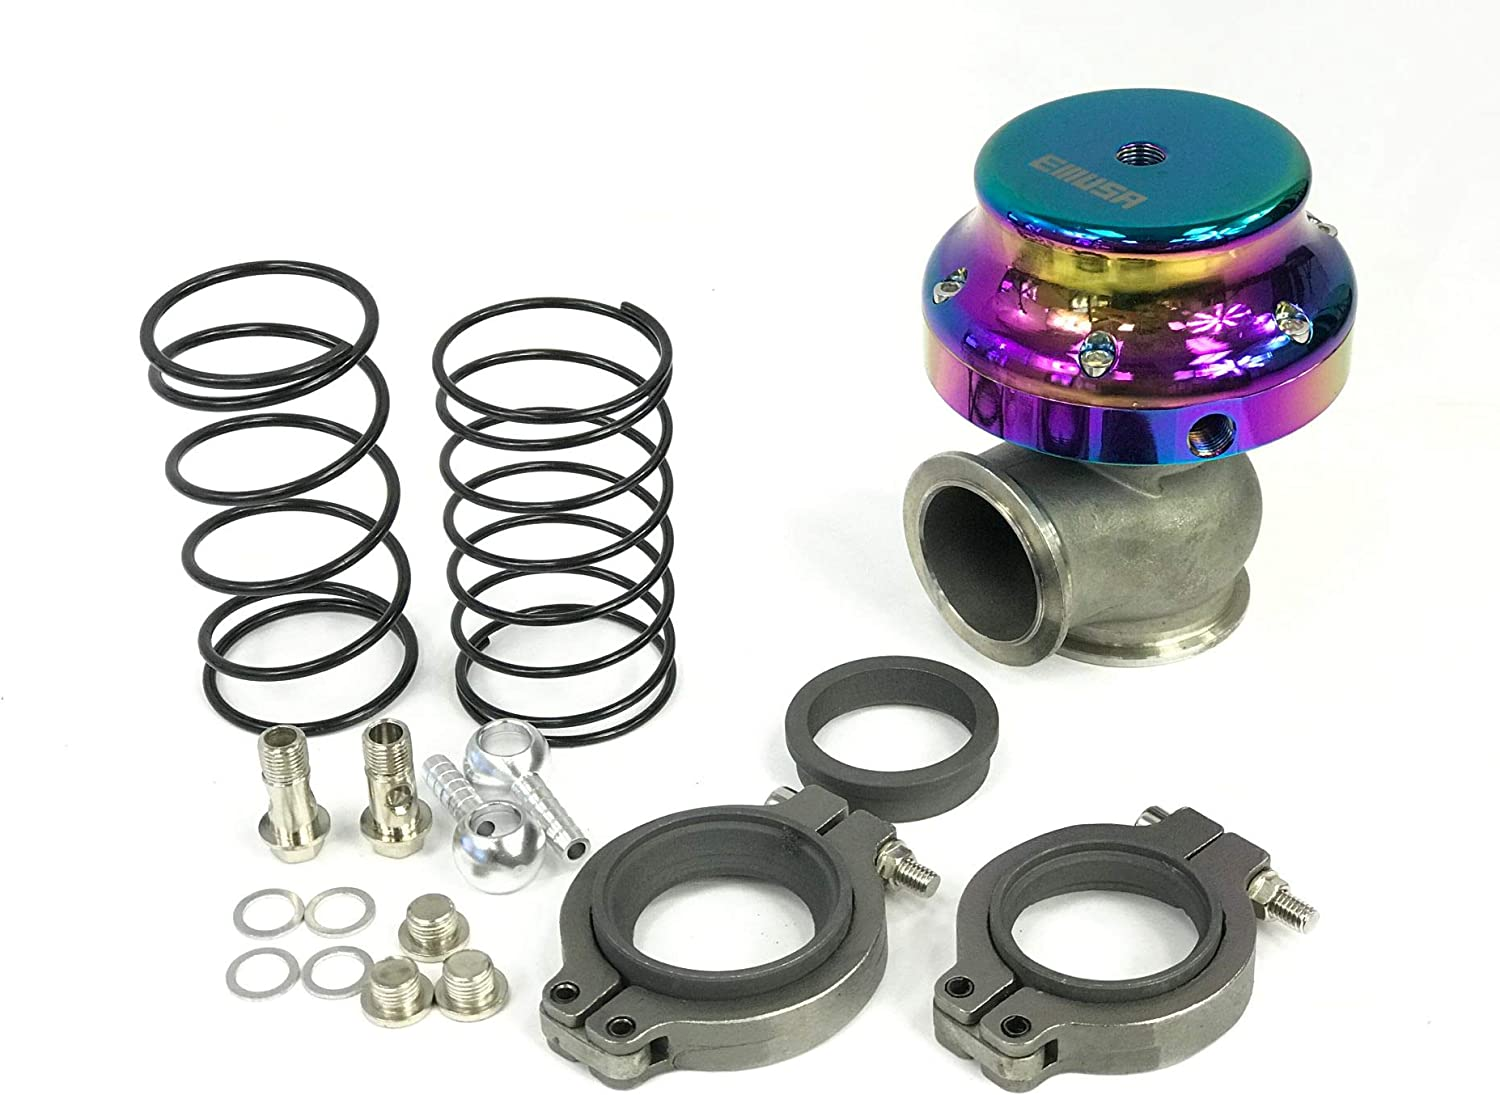 EMUSA 38mm V Band Turbo NEW before selling ☆ Springs Wastegate ! Super beauty product restock quality top! Adjustable Actuator V6